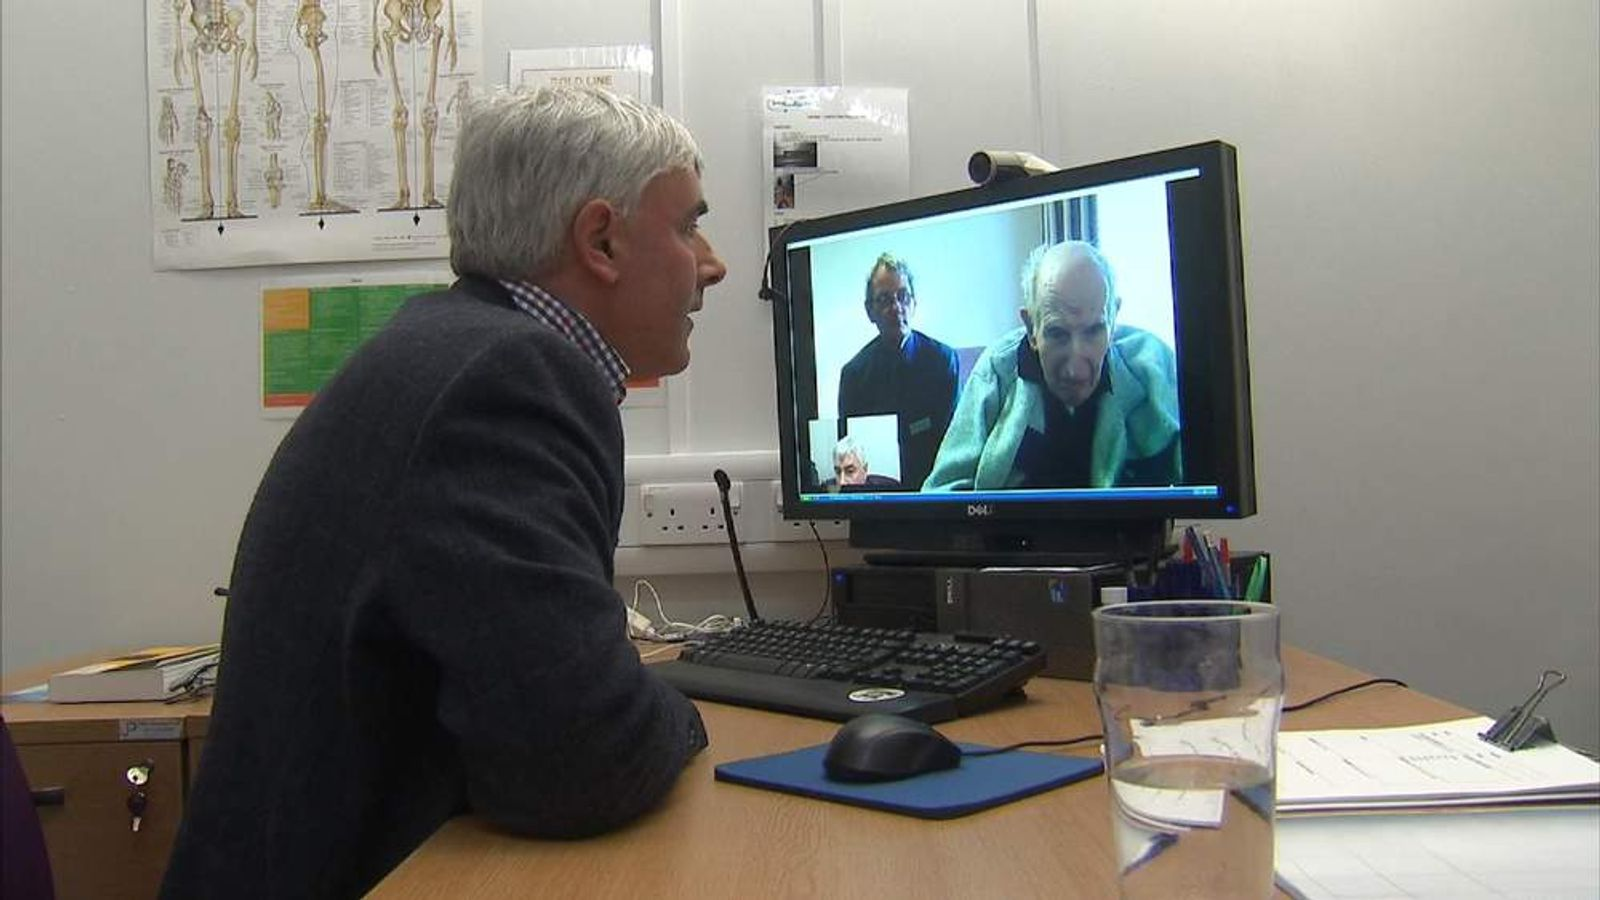 Dr Colin Renwick speaks to a patient in a care home via a webcam